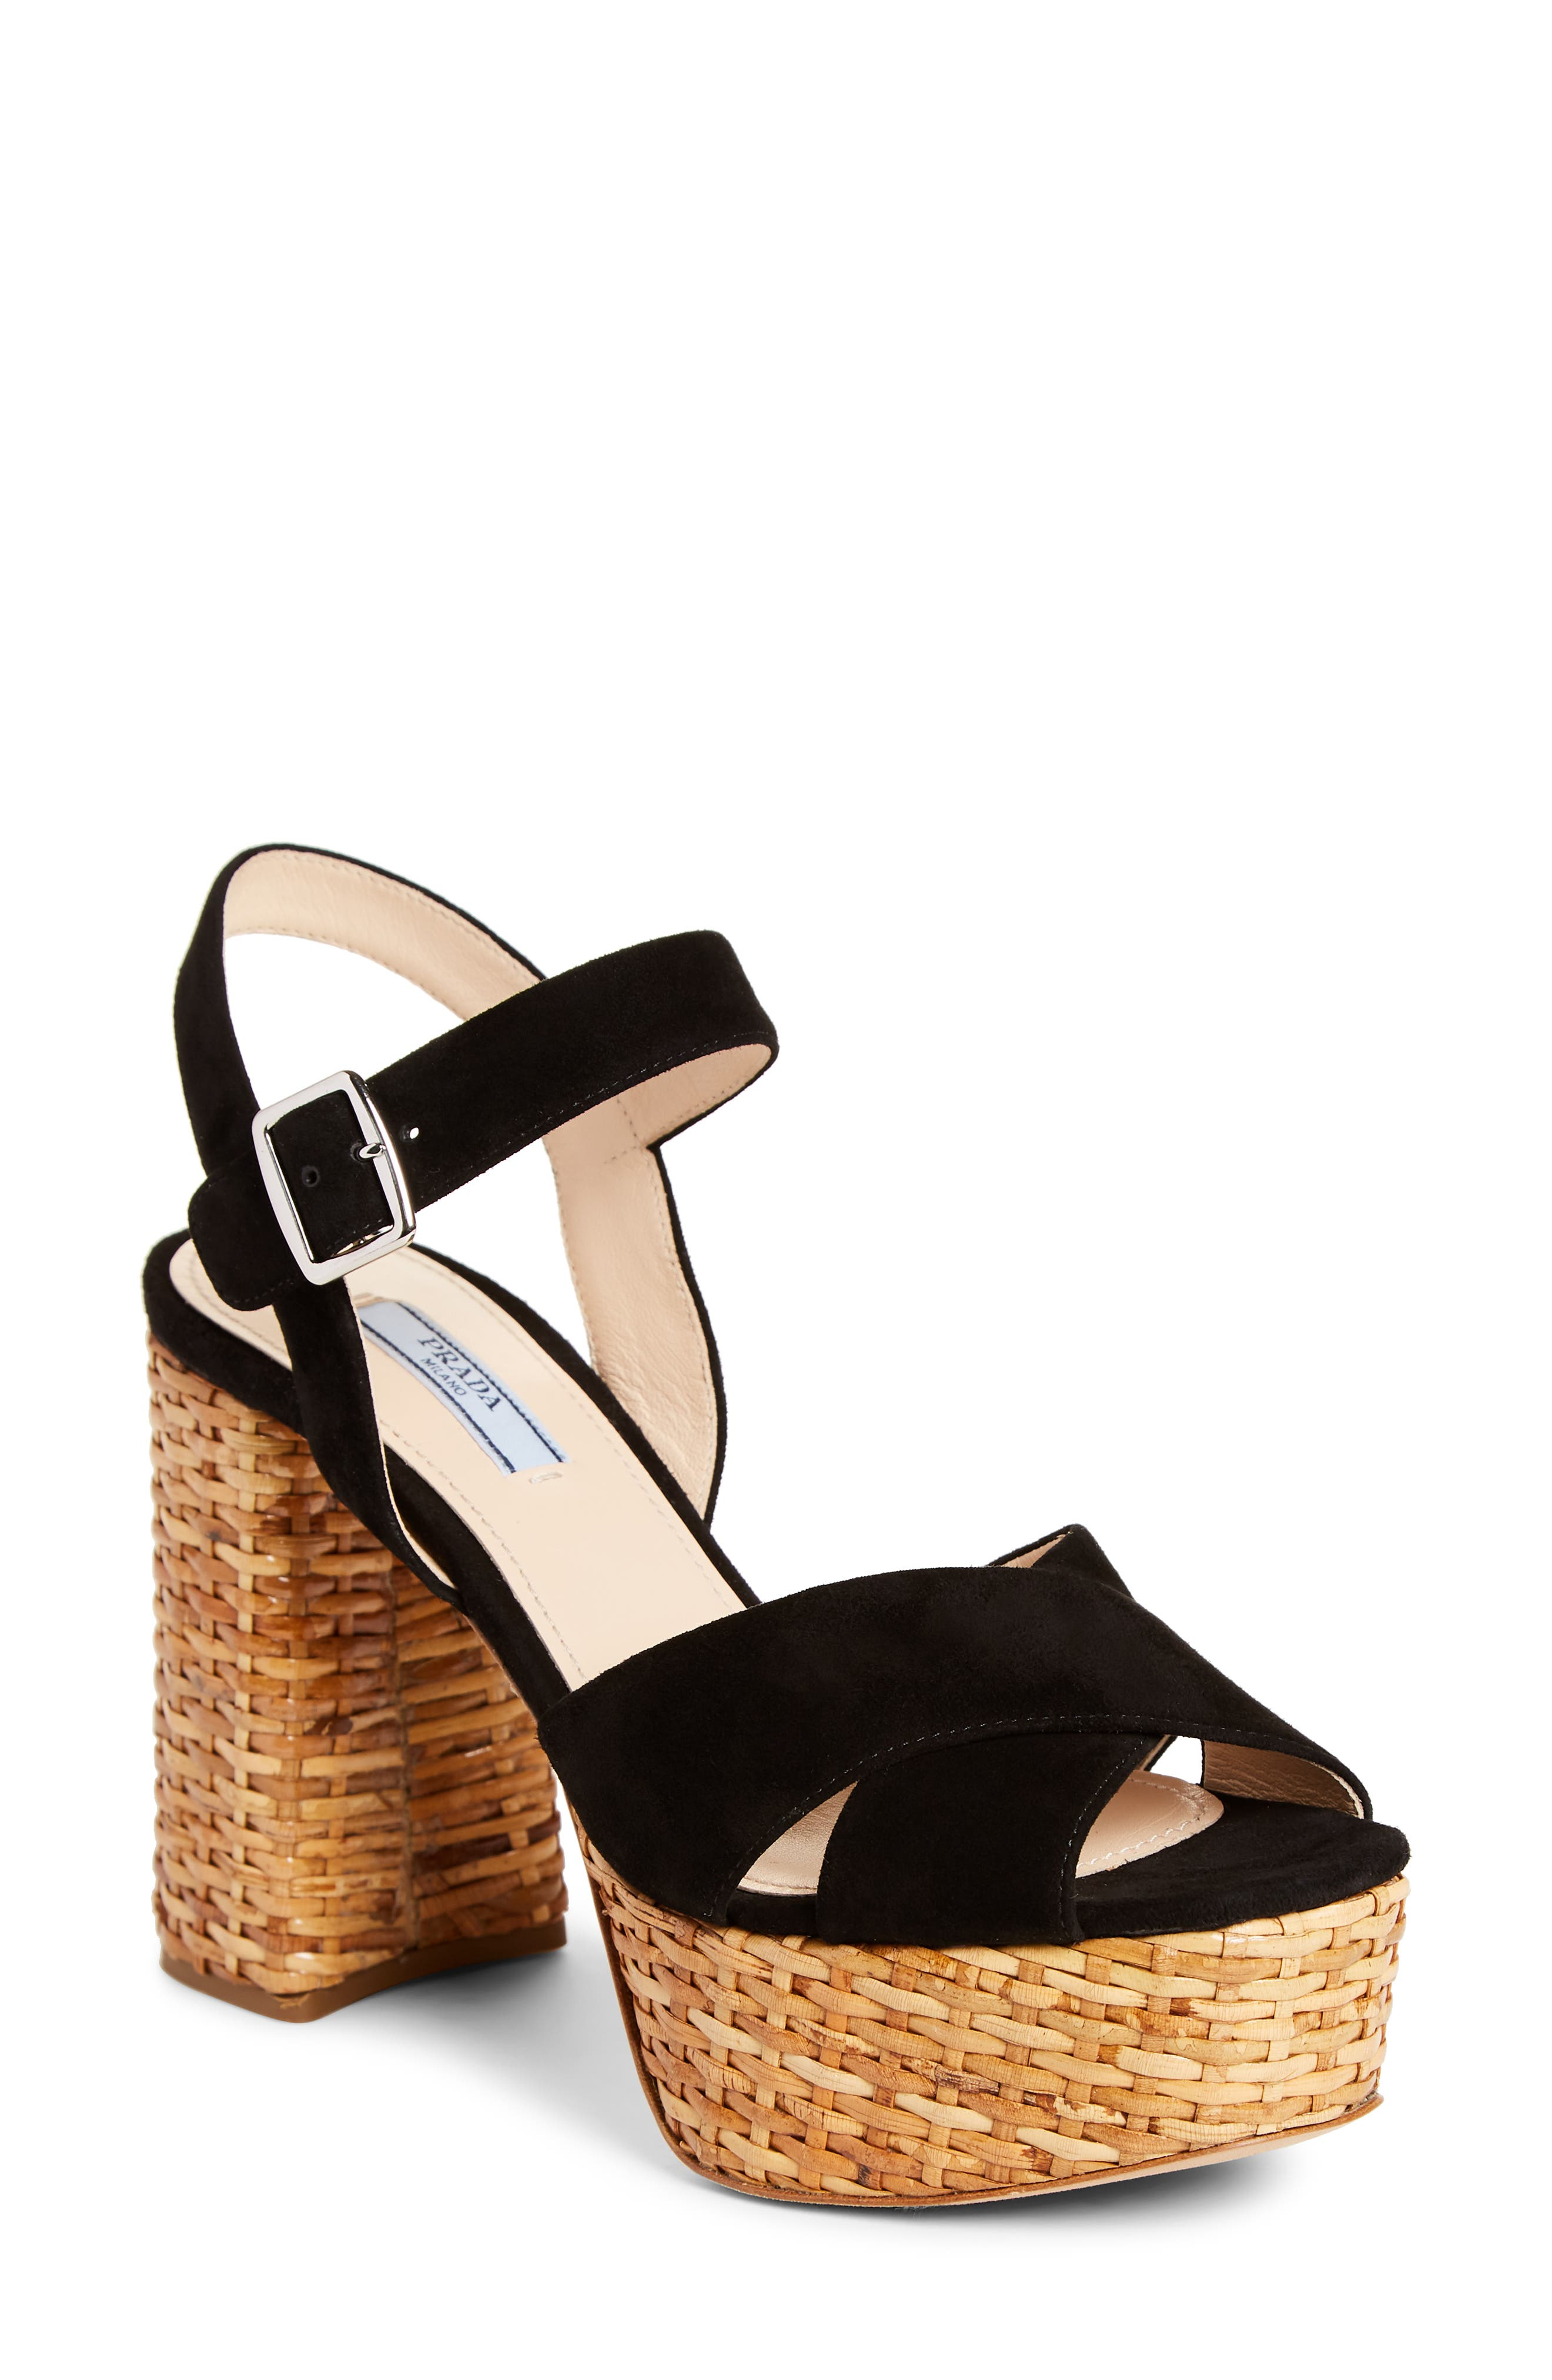 Mottled wicker brings breezy texture and nonchalance to the platform and towering, curvy heel of a sandal topped with straps of velvety suede. Style Name: Prada Wicker Platform Sandal (Women). Style Number: 5970333. Available in stores.